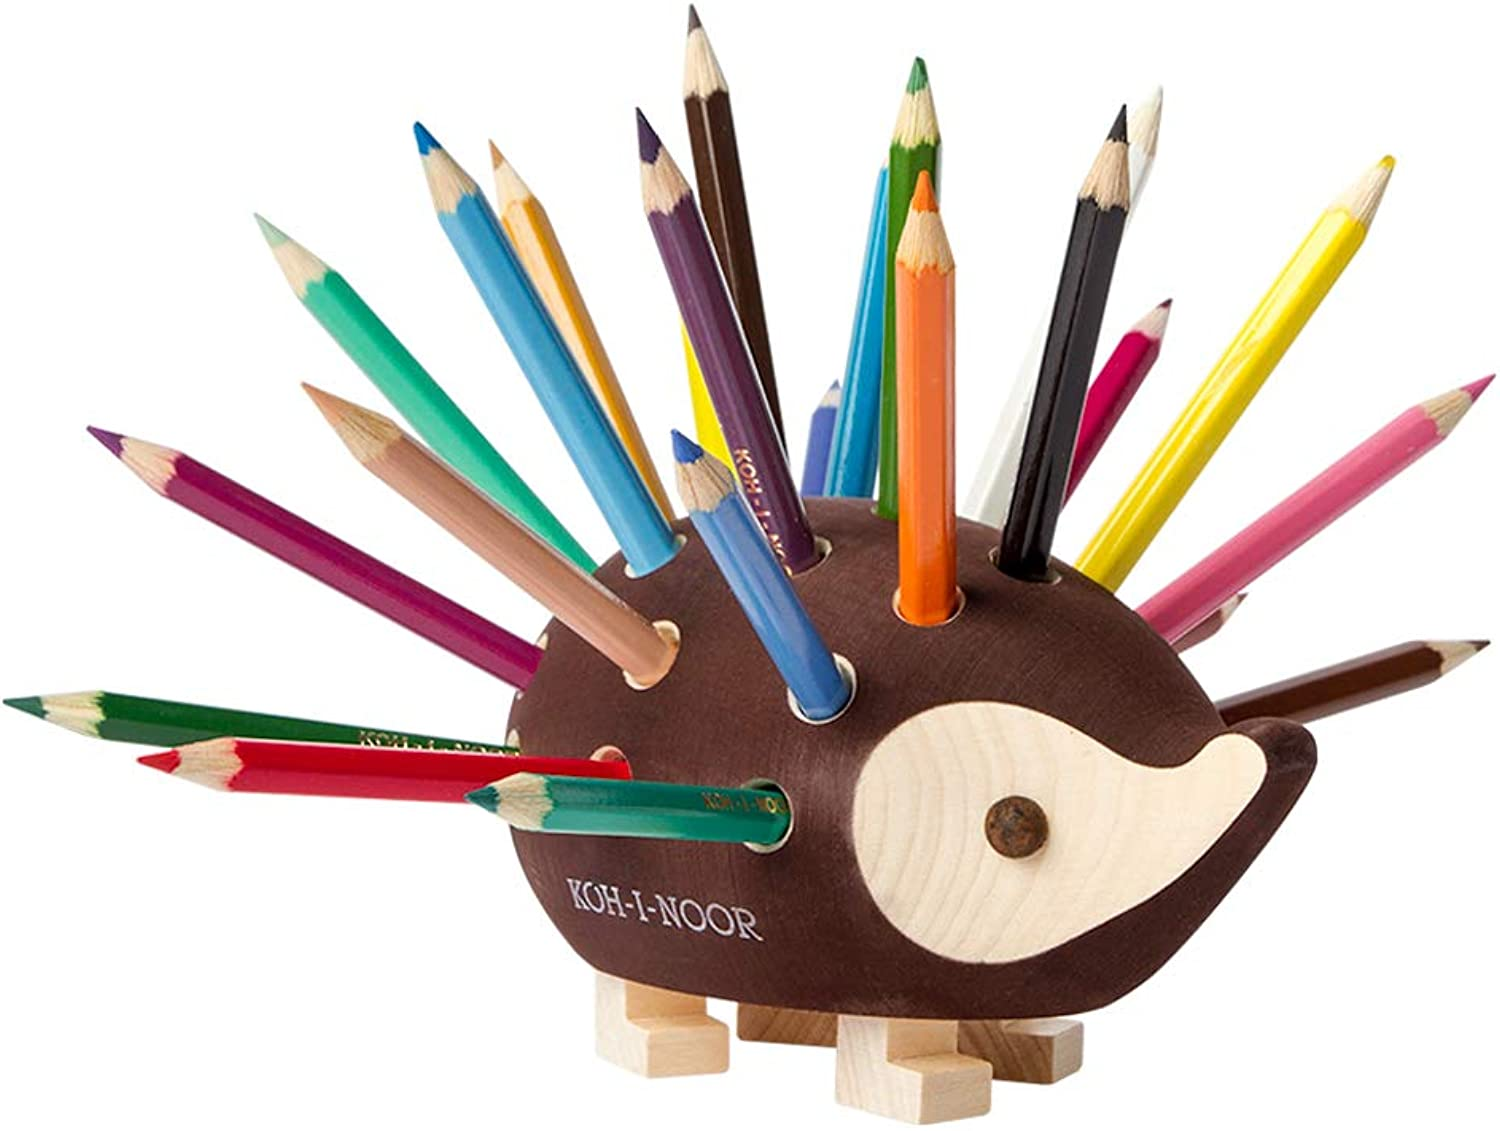 KOH-I-NOOR Small Hedgehog Pencil Holder with Pencil (Set of 24)